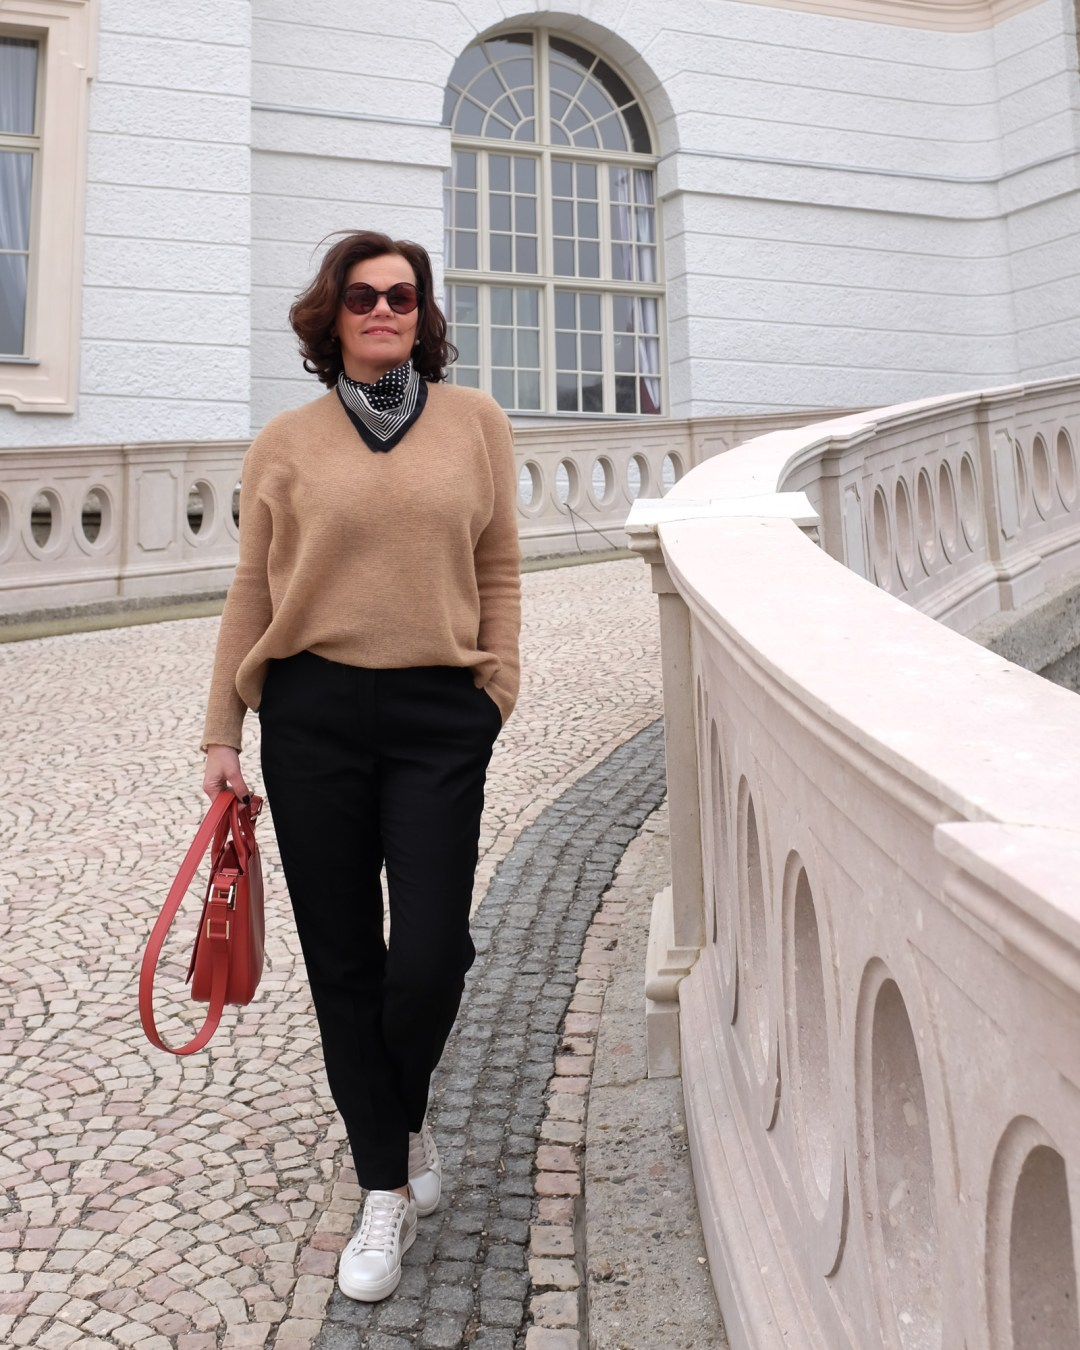 inastil, Ü50Blogger, Modeberatung, Stilberatung, Ü50Mode, Styleover50, Cabanjacke, Aignertasche, weisse Sneaker, Casualstyle, Streetstyle-11